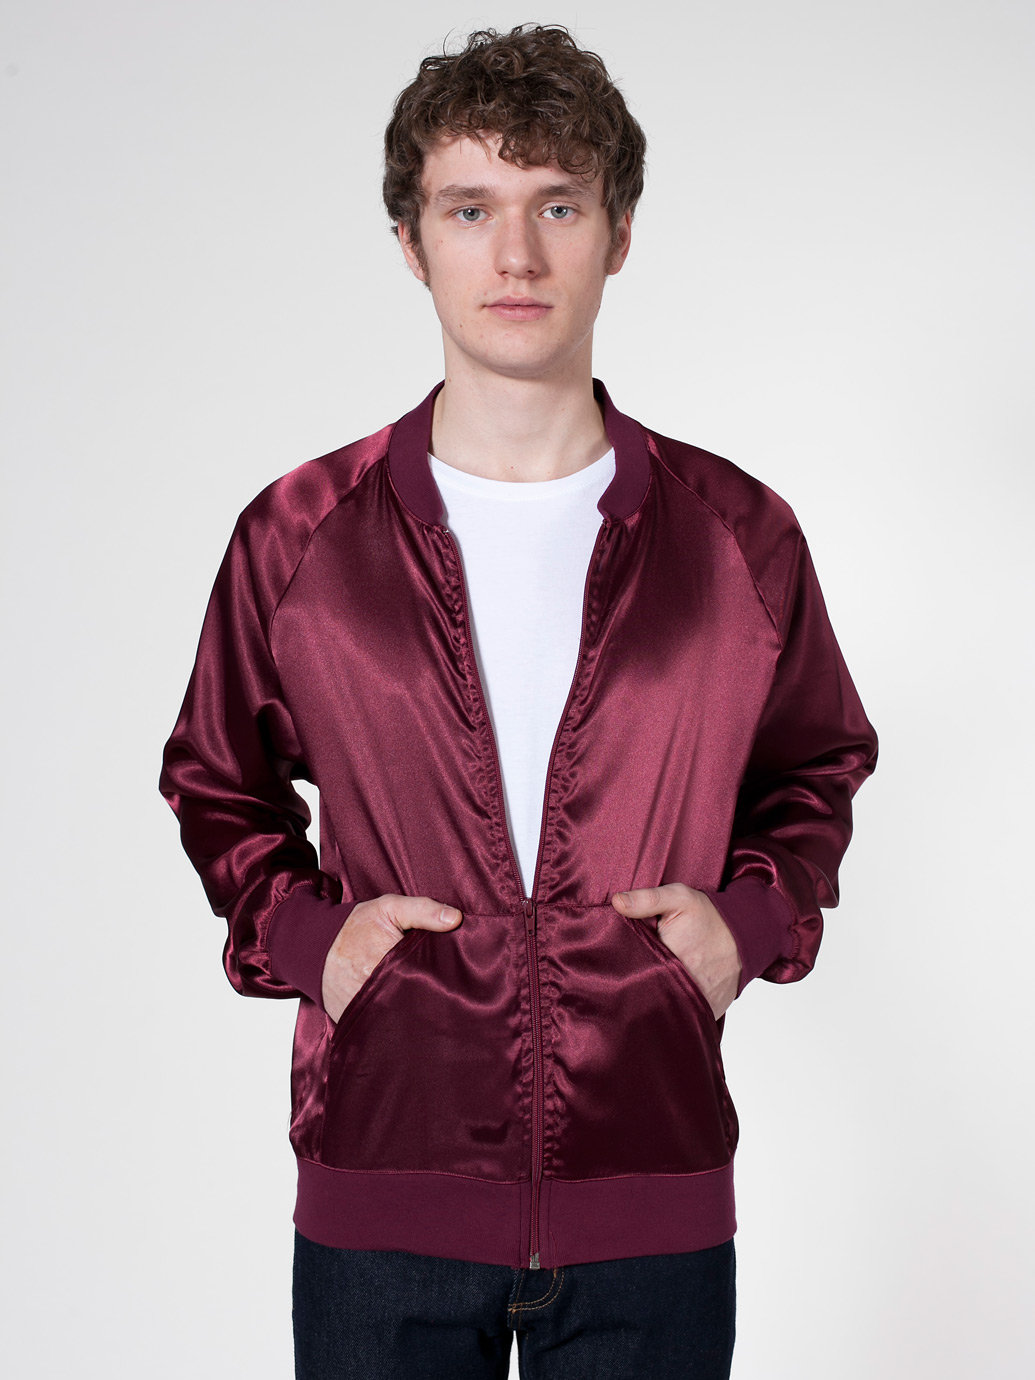 Satin Charmeuse Night Jacket | American Apparel